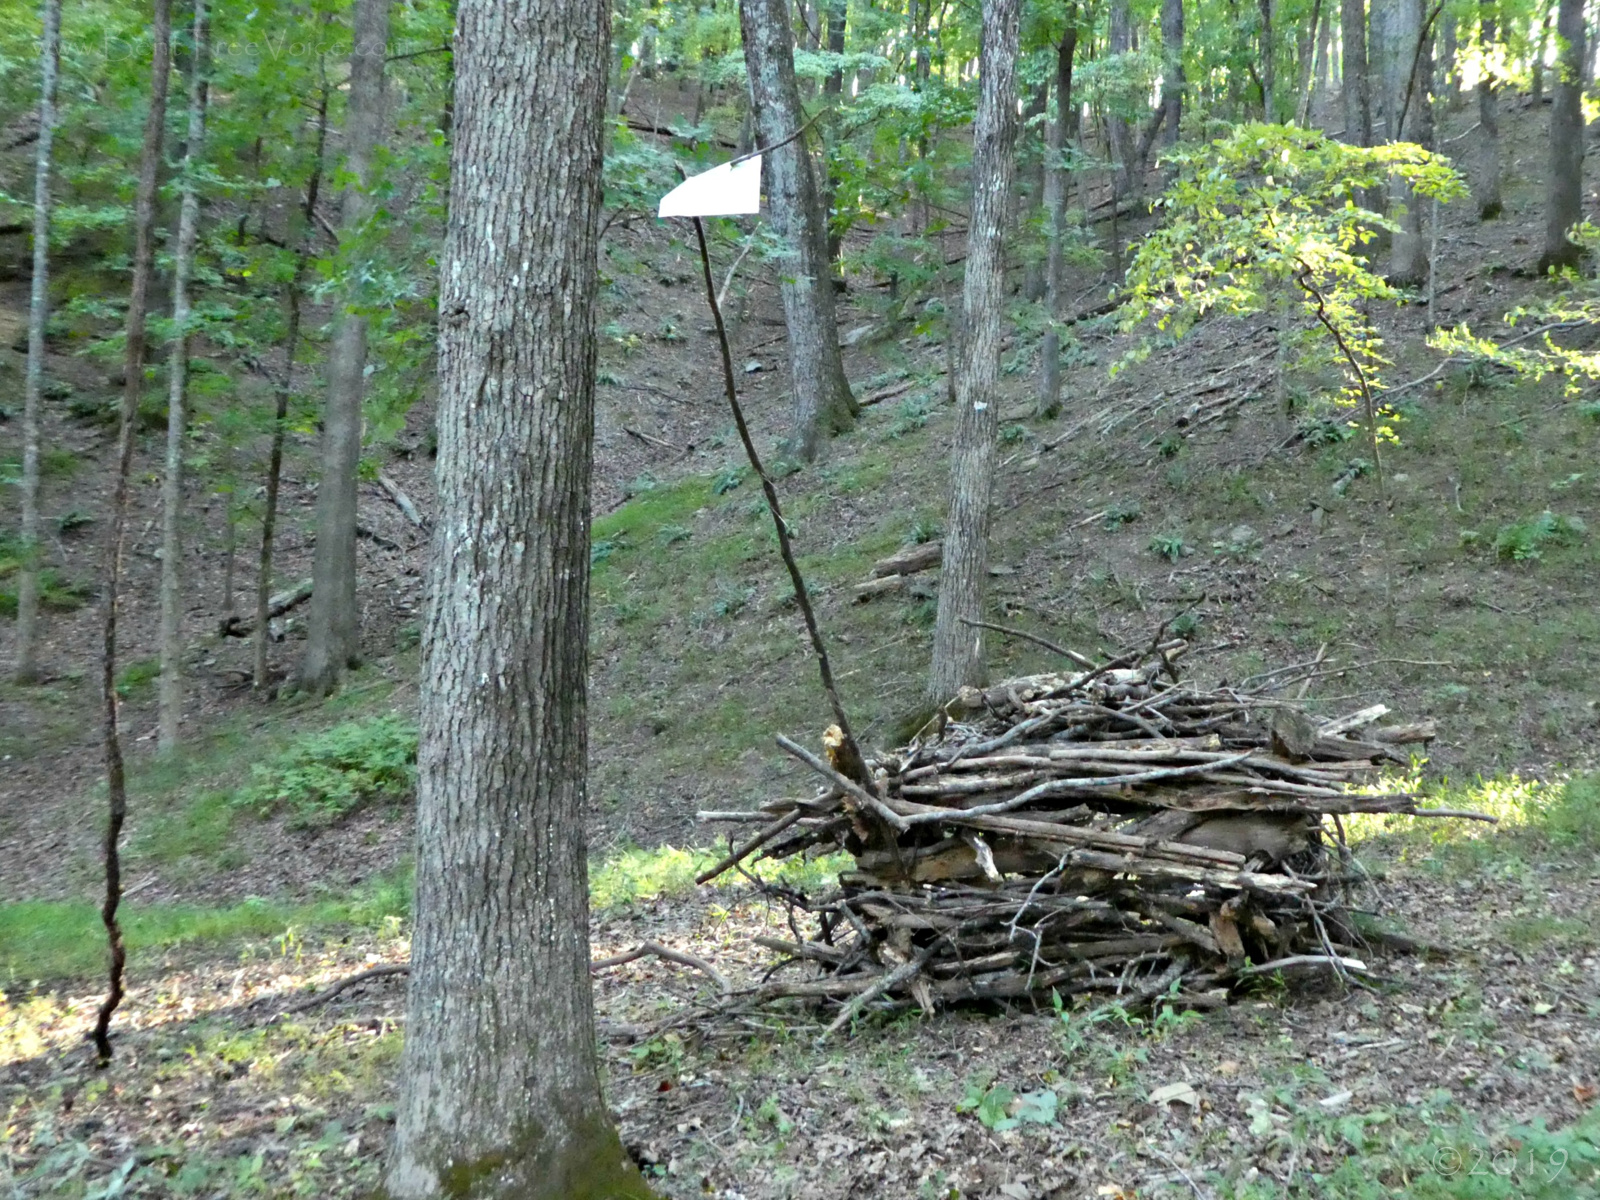 September 6, 2019 - Fort in Bent Tree, complete with a flag